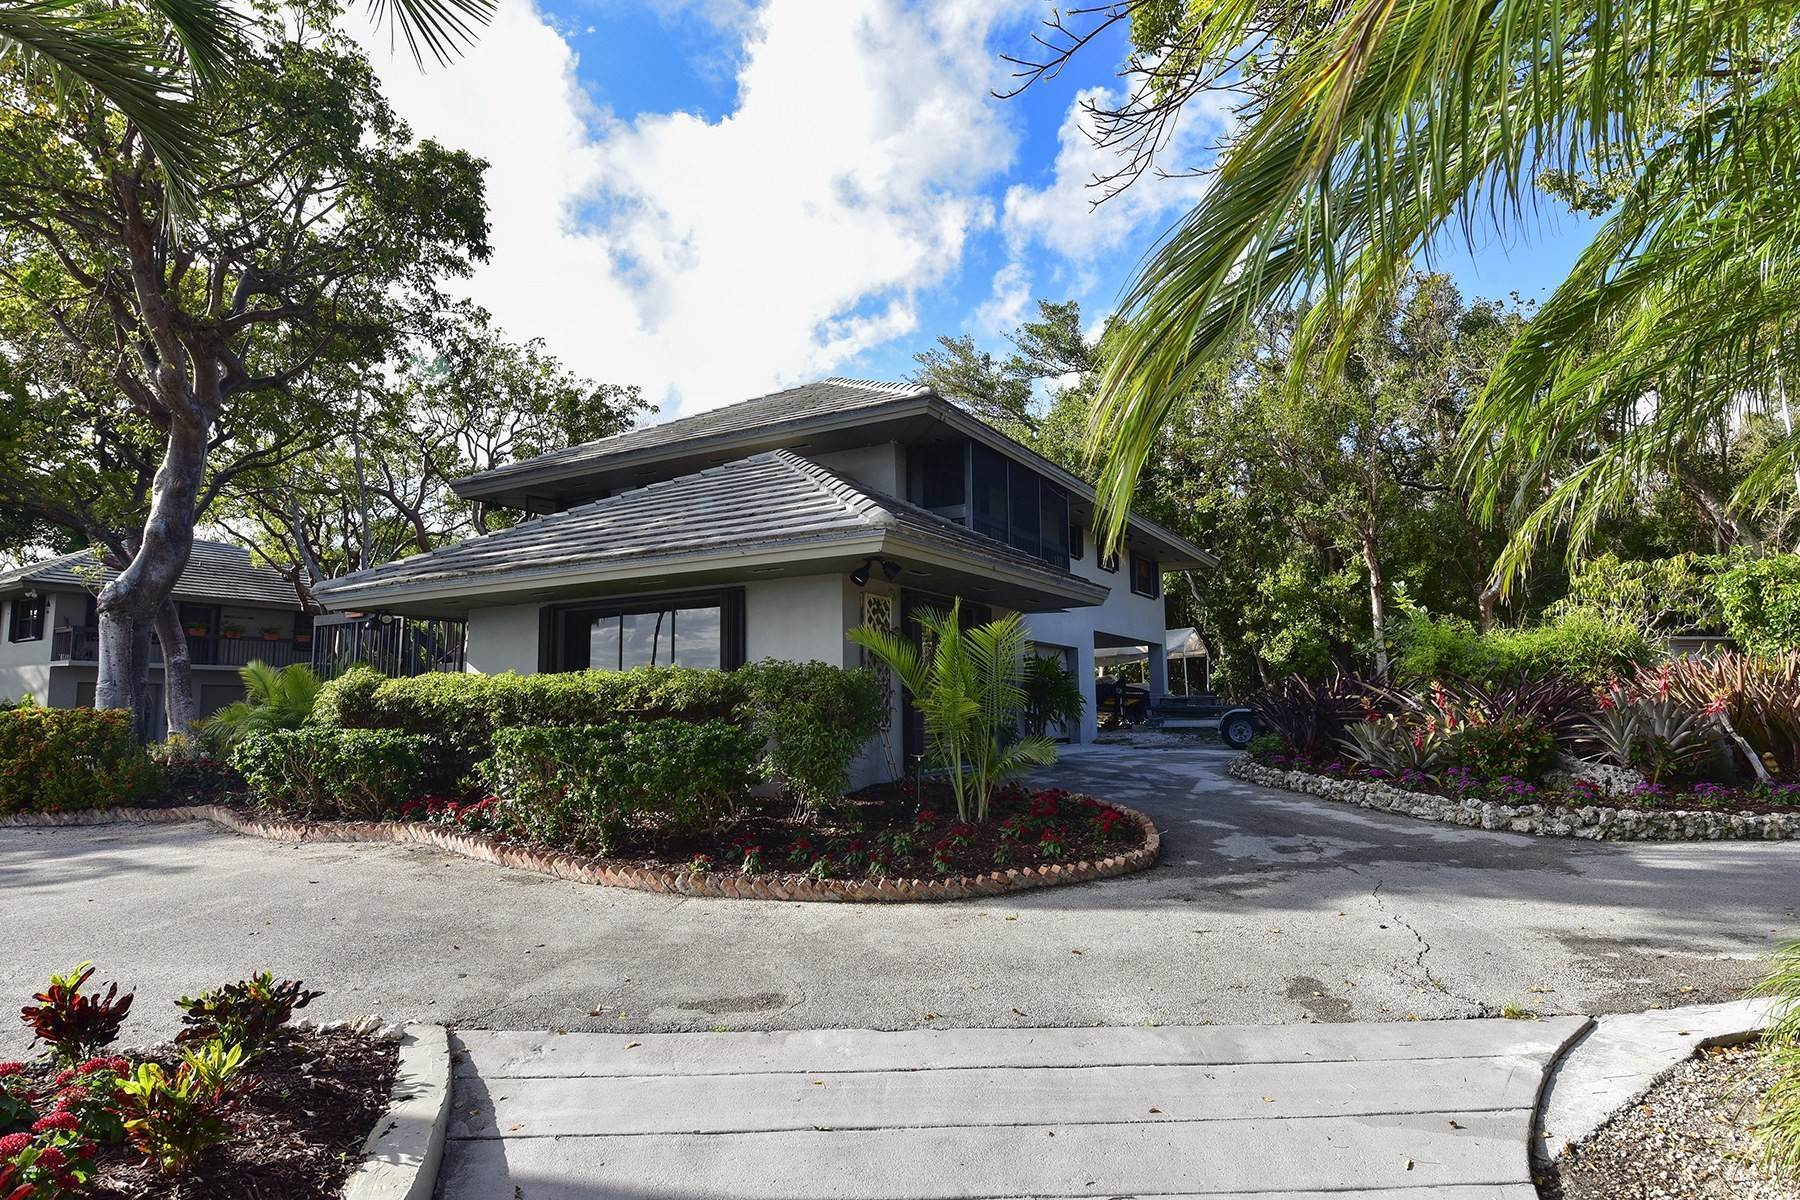 4. Property for Sale at 10 Cannon Point, Key Largo, FL 10 Cannon Point Key Largo, Florida 33037 United States